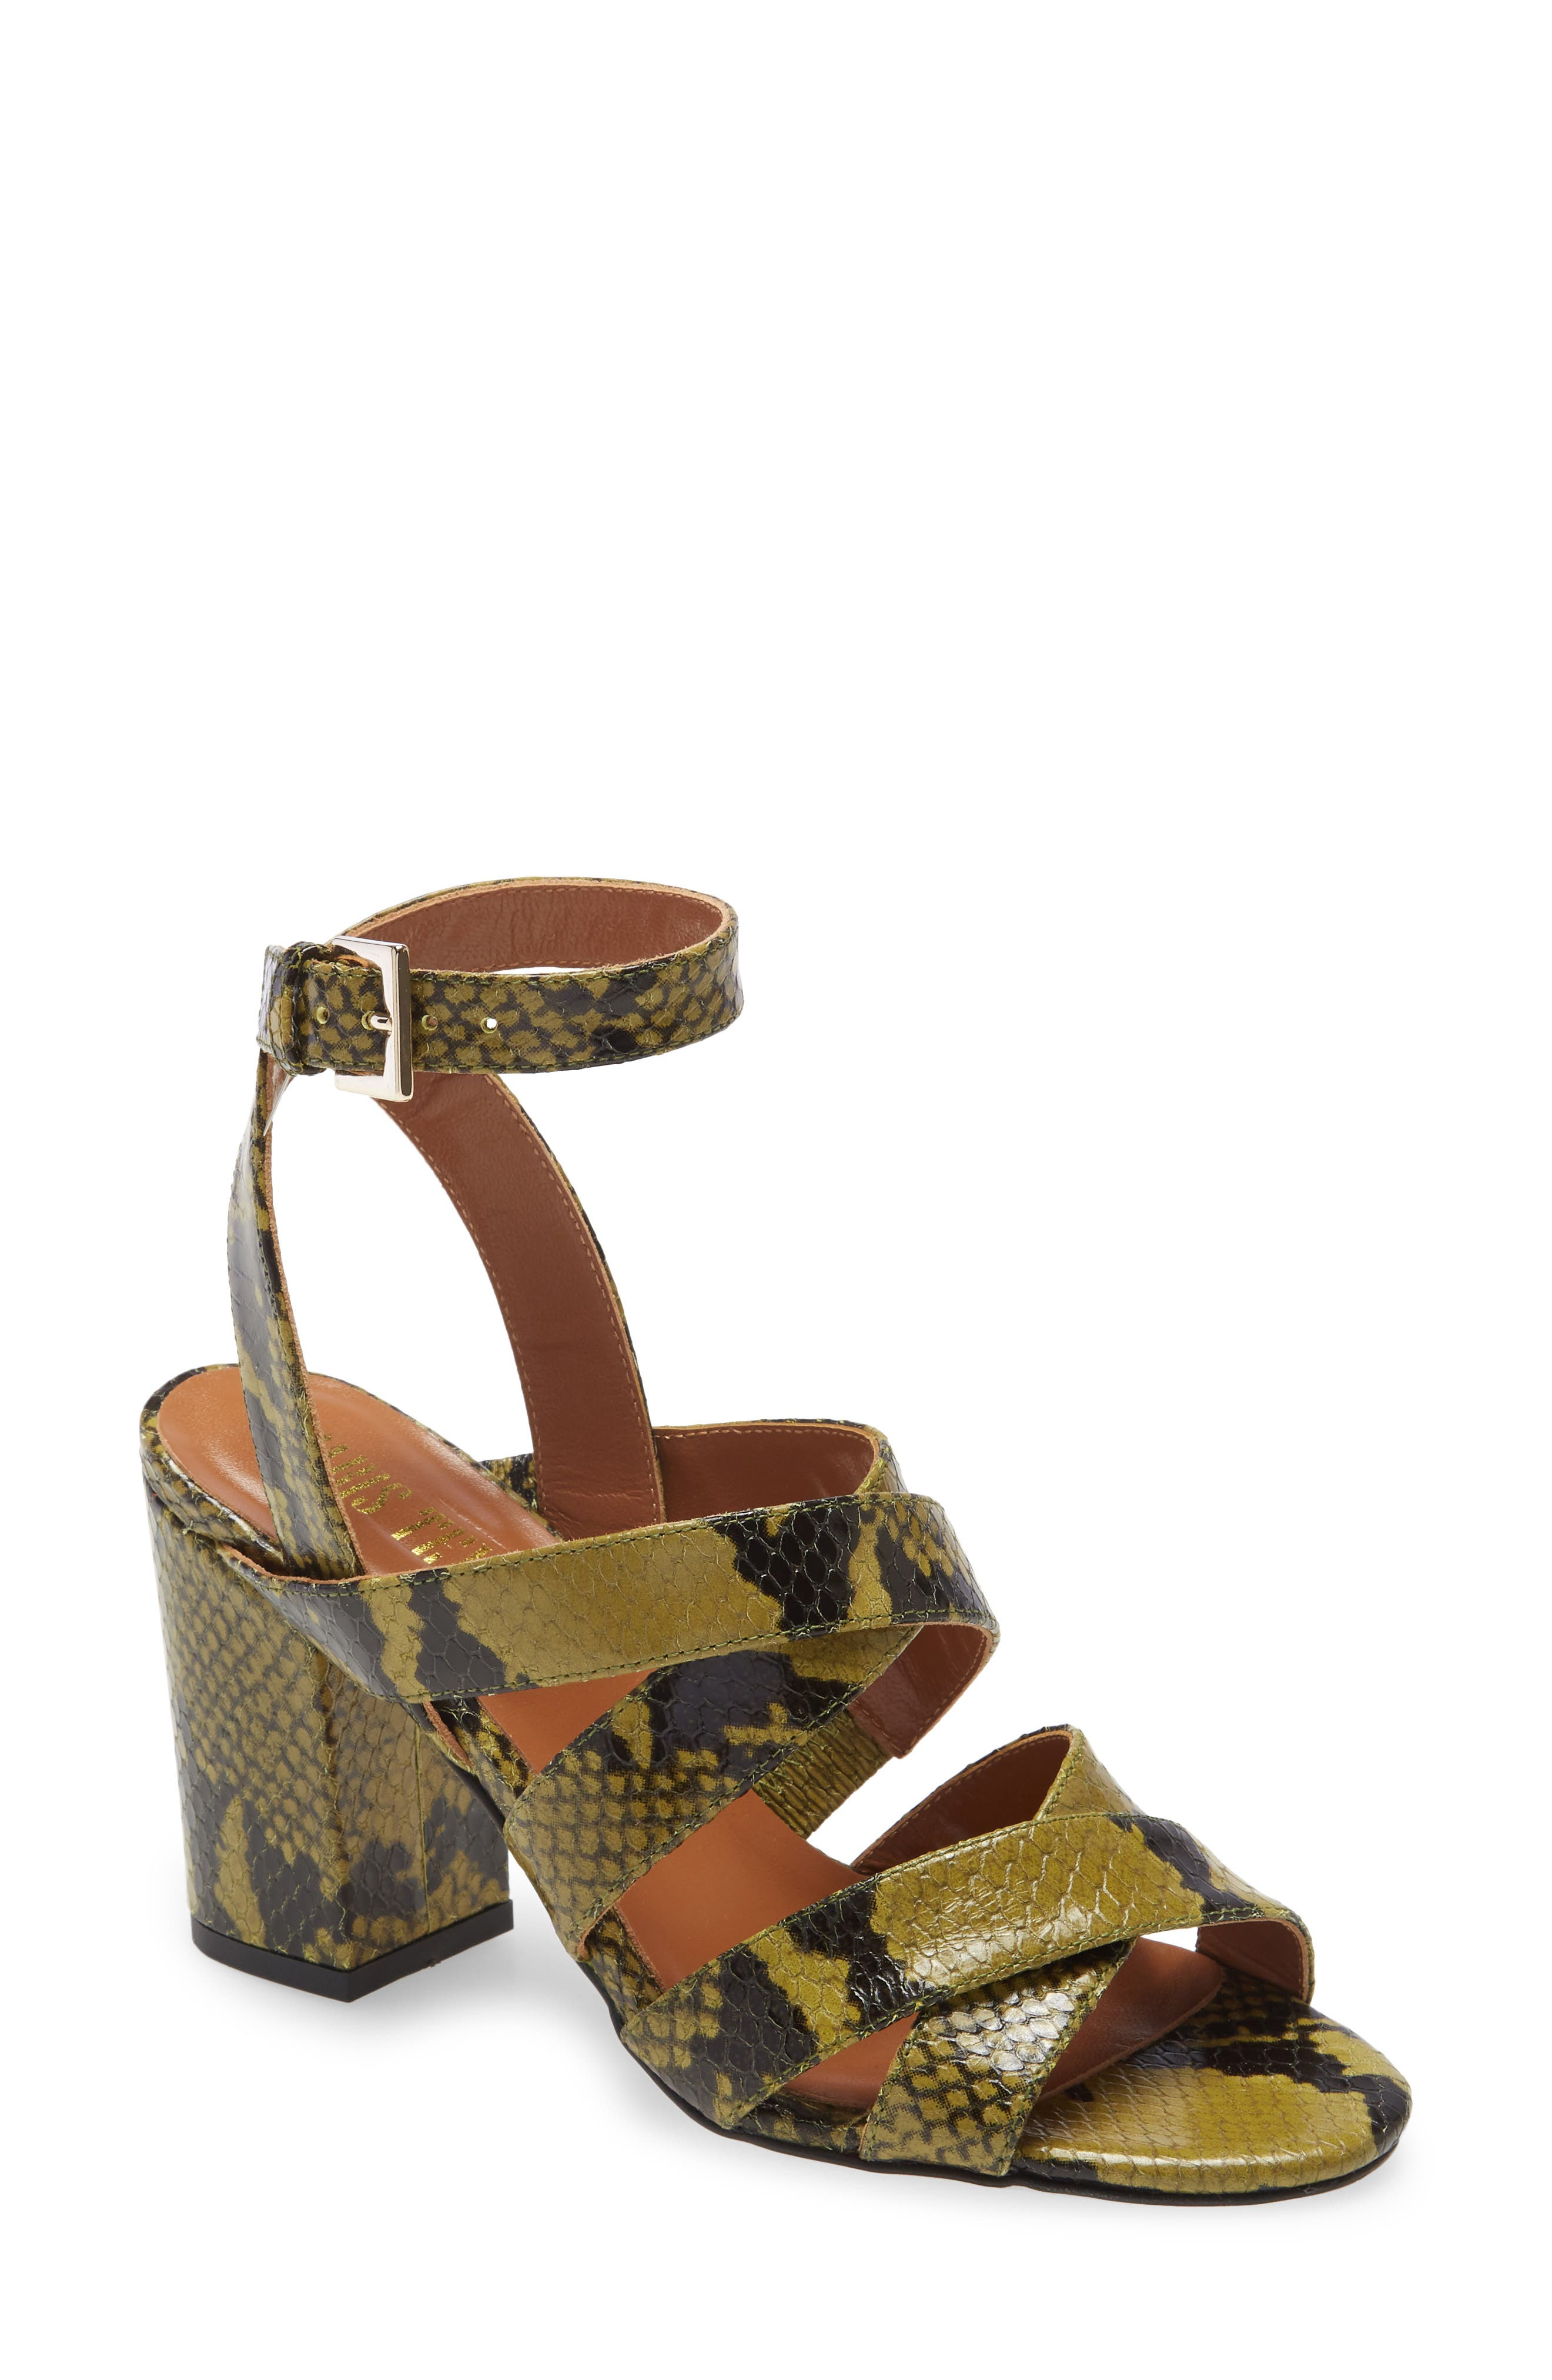 Image of PARIS TEXAS Python Embossed Ankle Strap Sandal